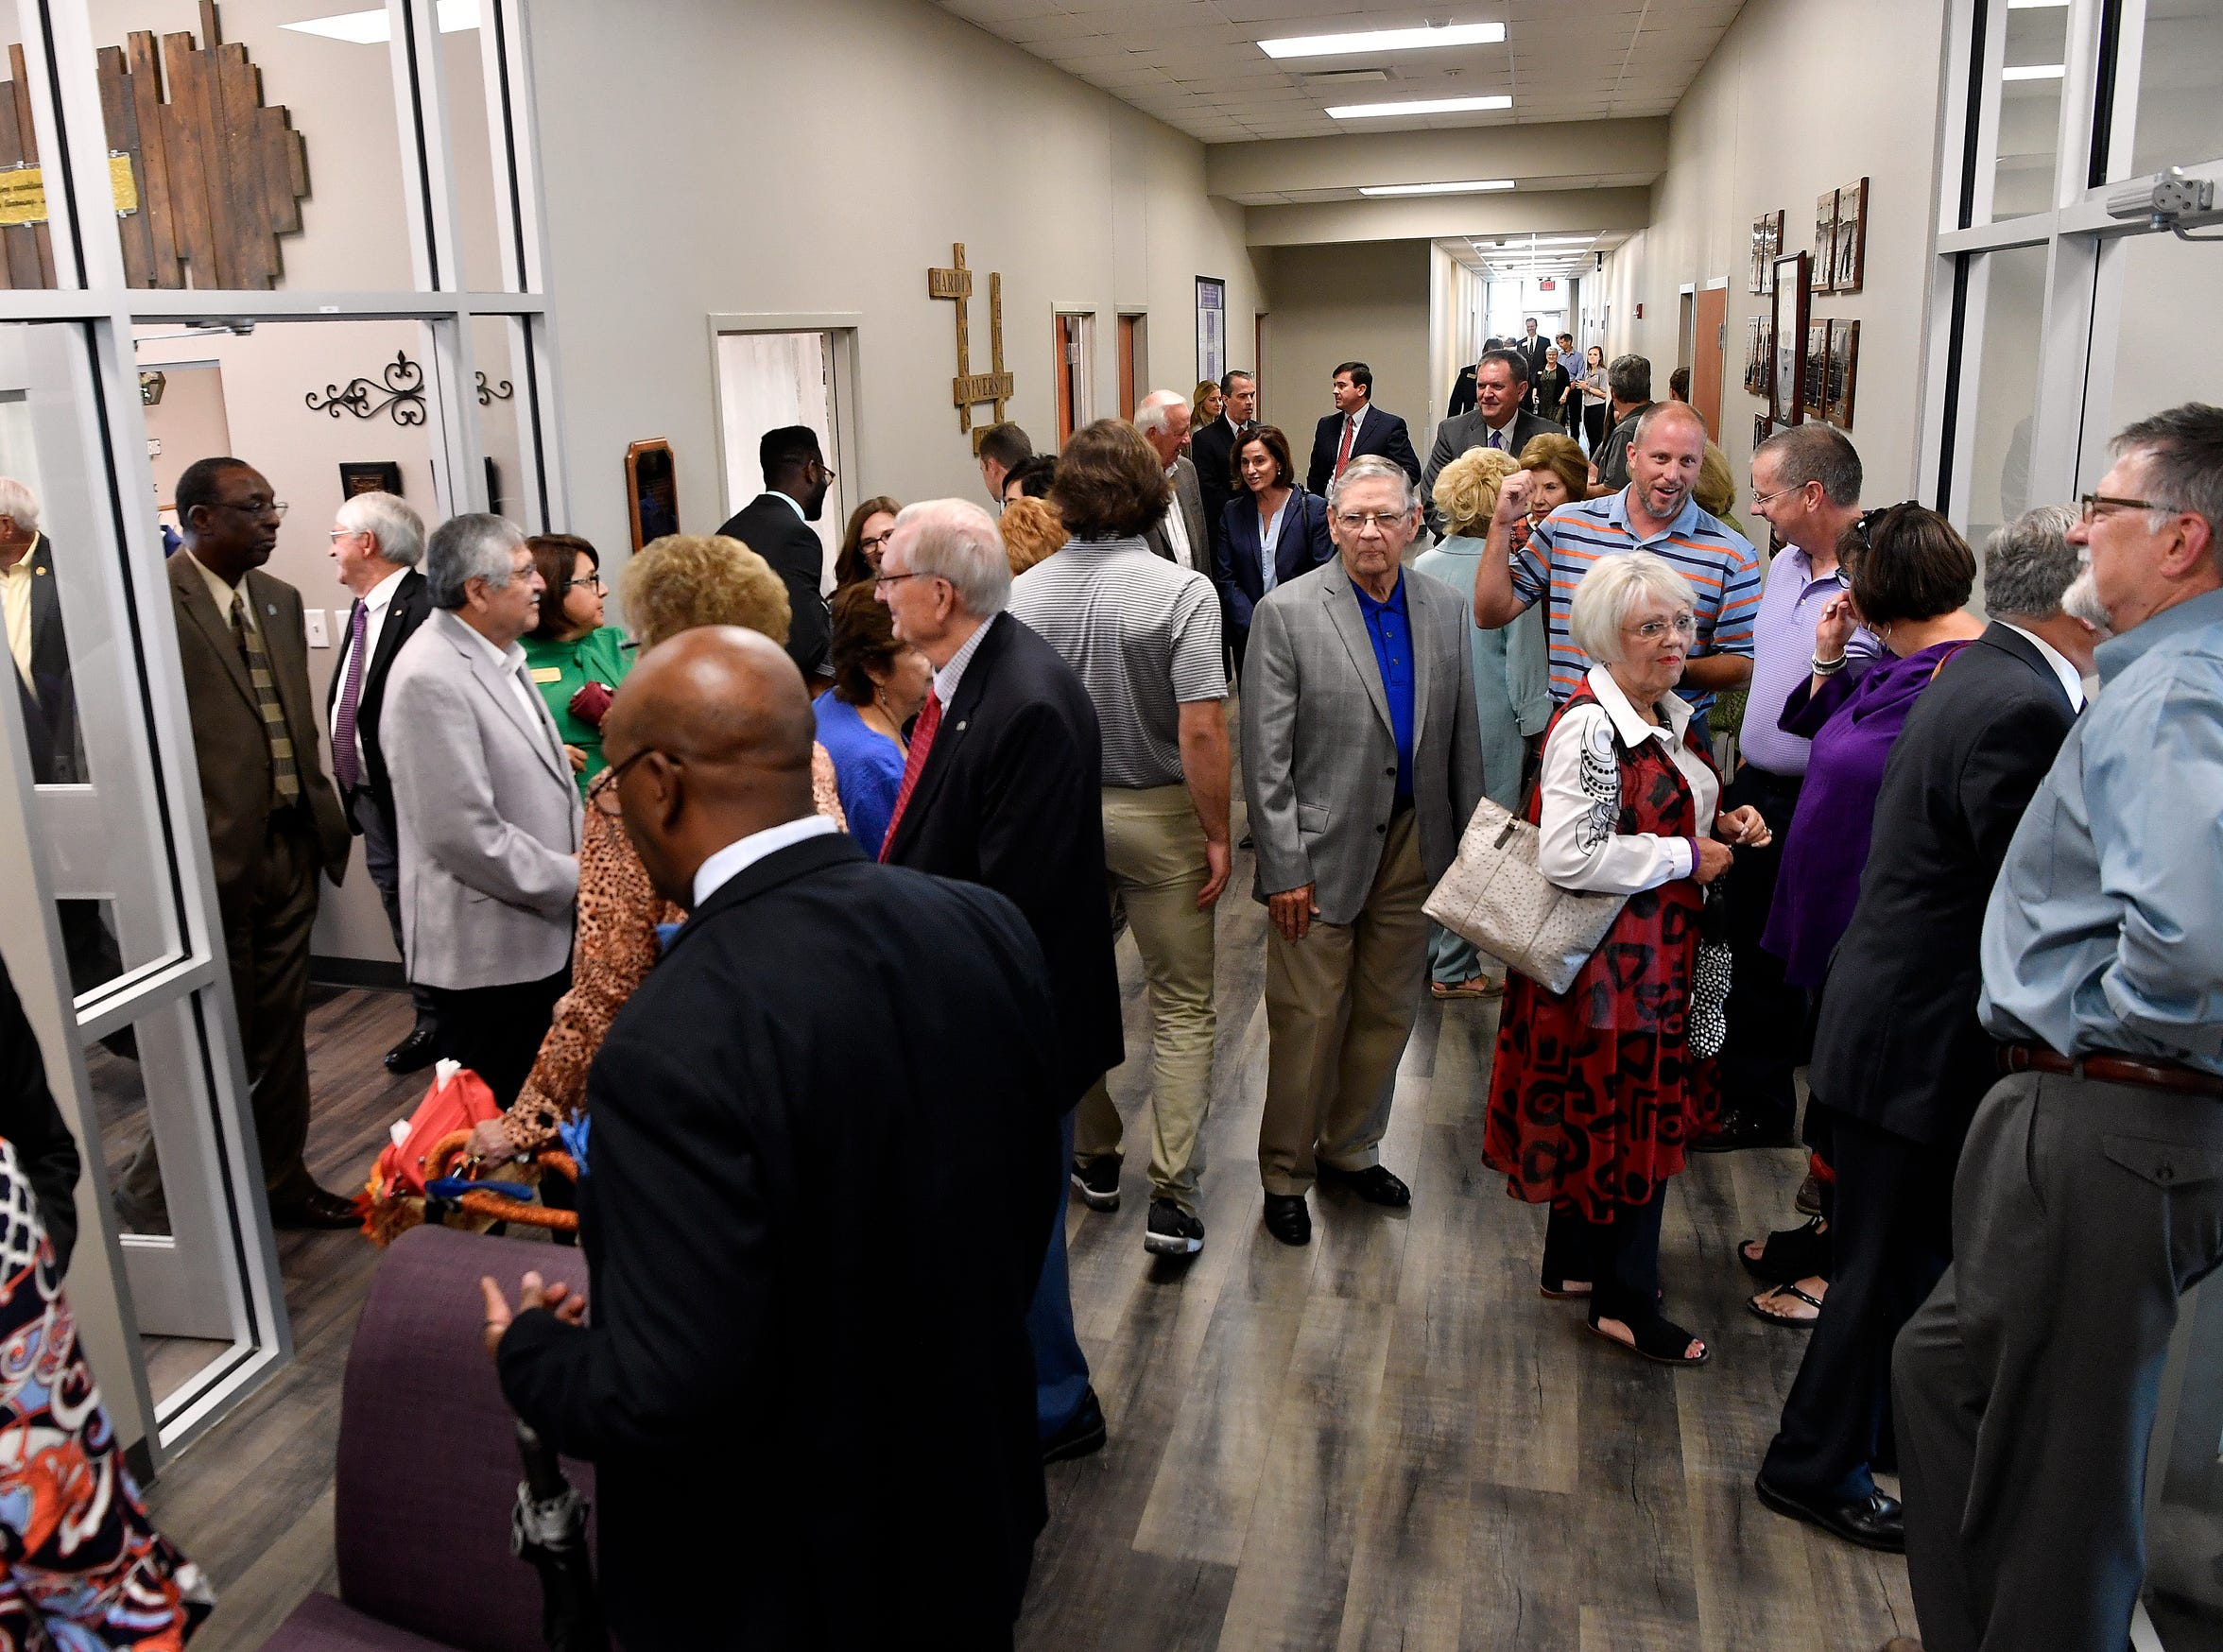 Visitors attend a Sept. 6 open house at the Hardin-Simmons University physical therapy building. The building is the former AbLabs at 1325 Pine St.